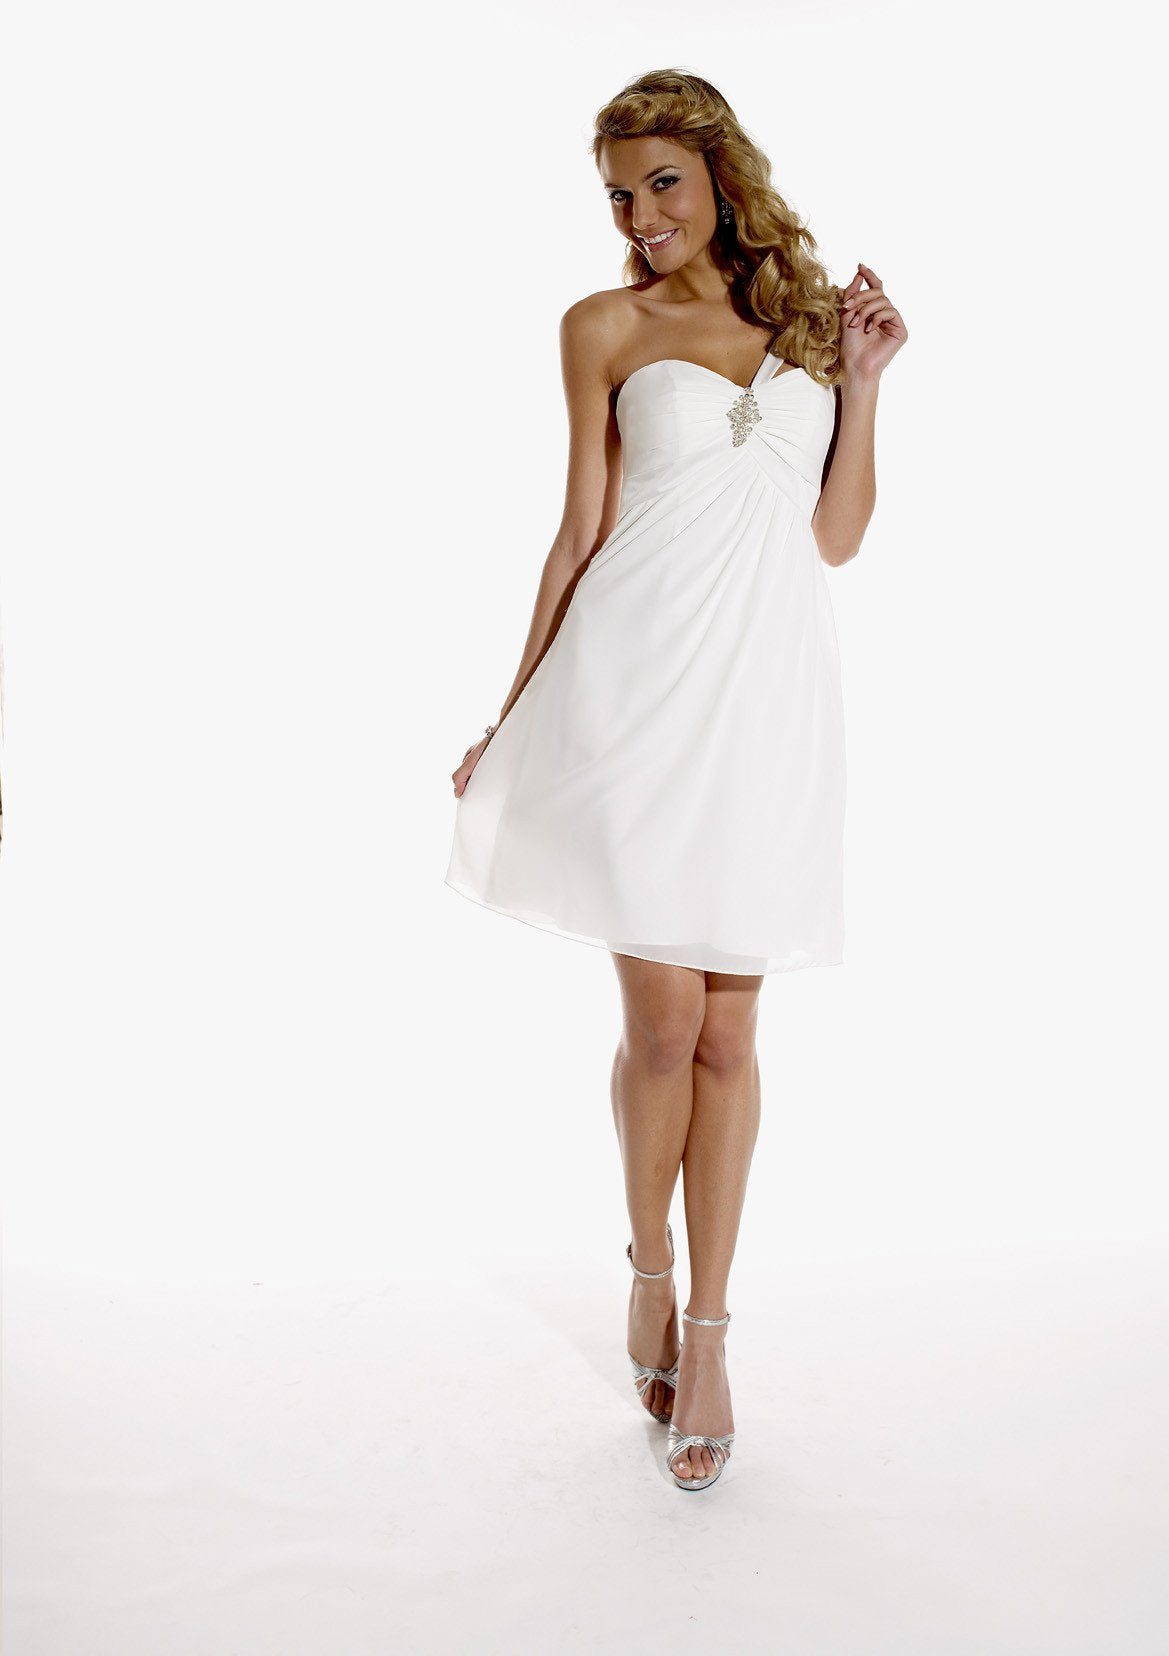 Pretty Maids 22421 Sangria size 10 In Stock Bridesmaid Dress - Tom's Bridal